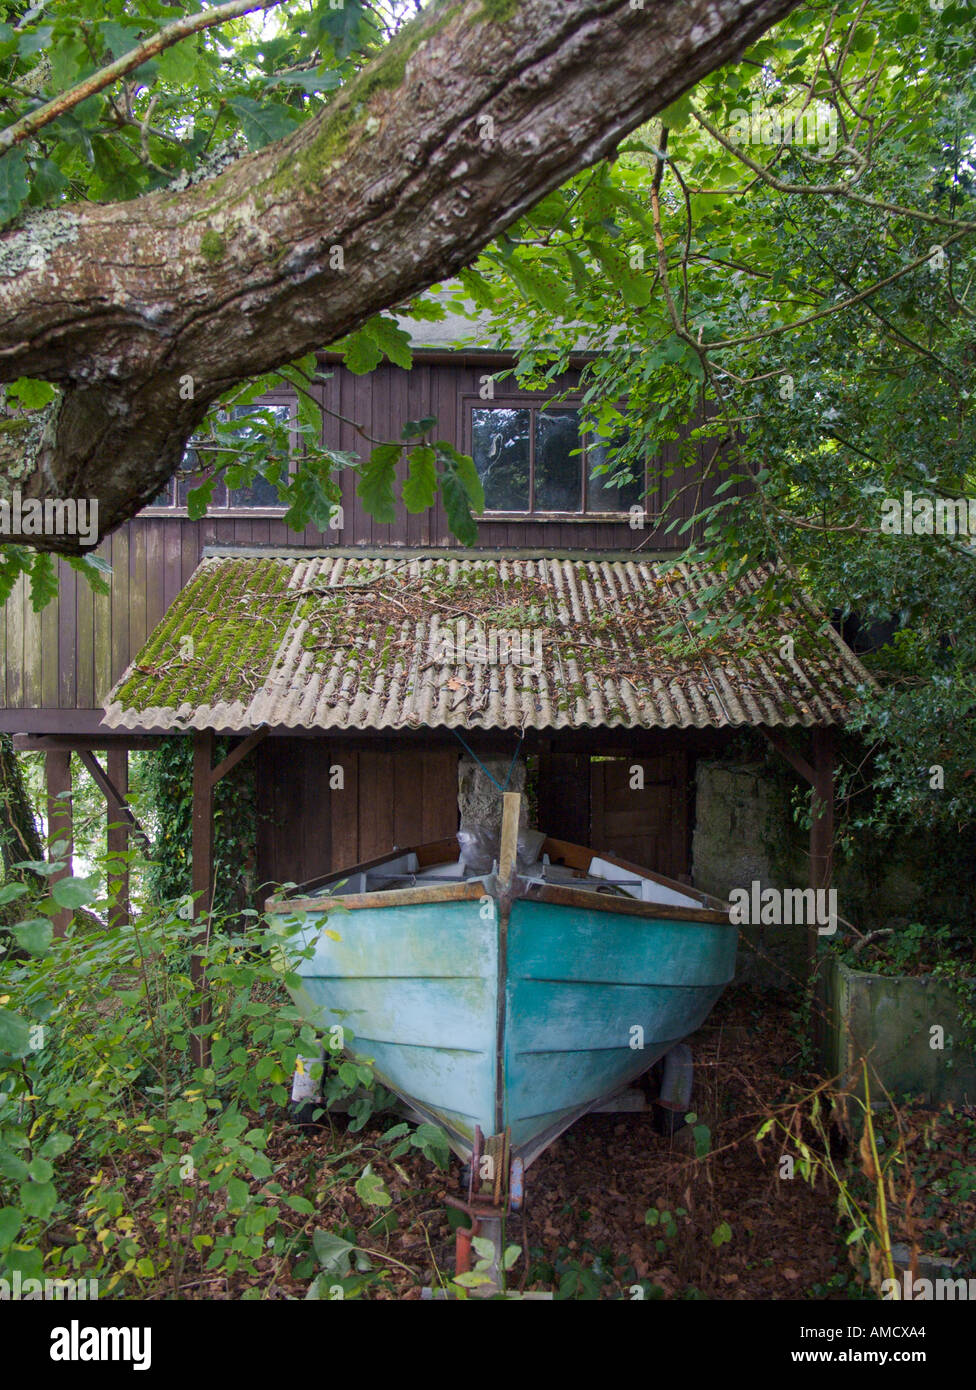 Boat house in Cornwall - Stock Image